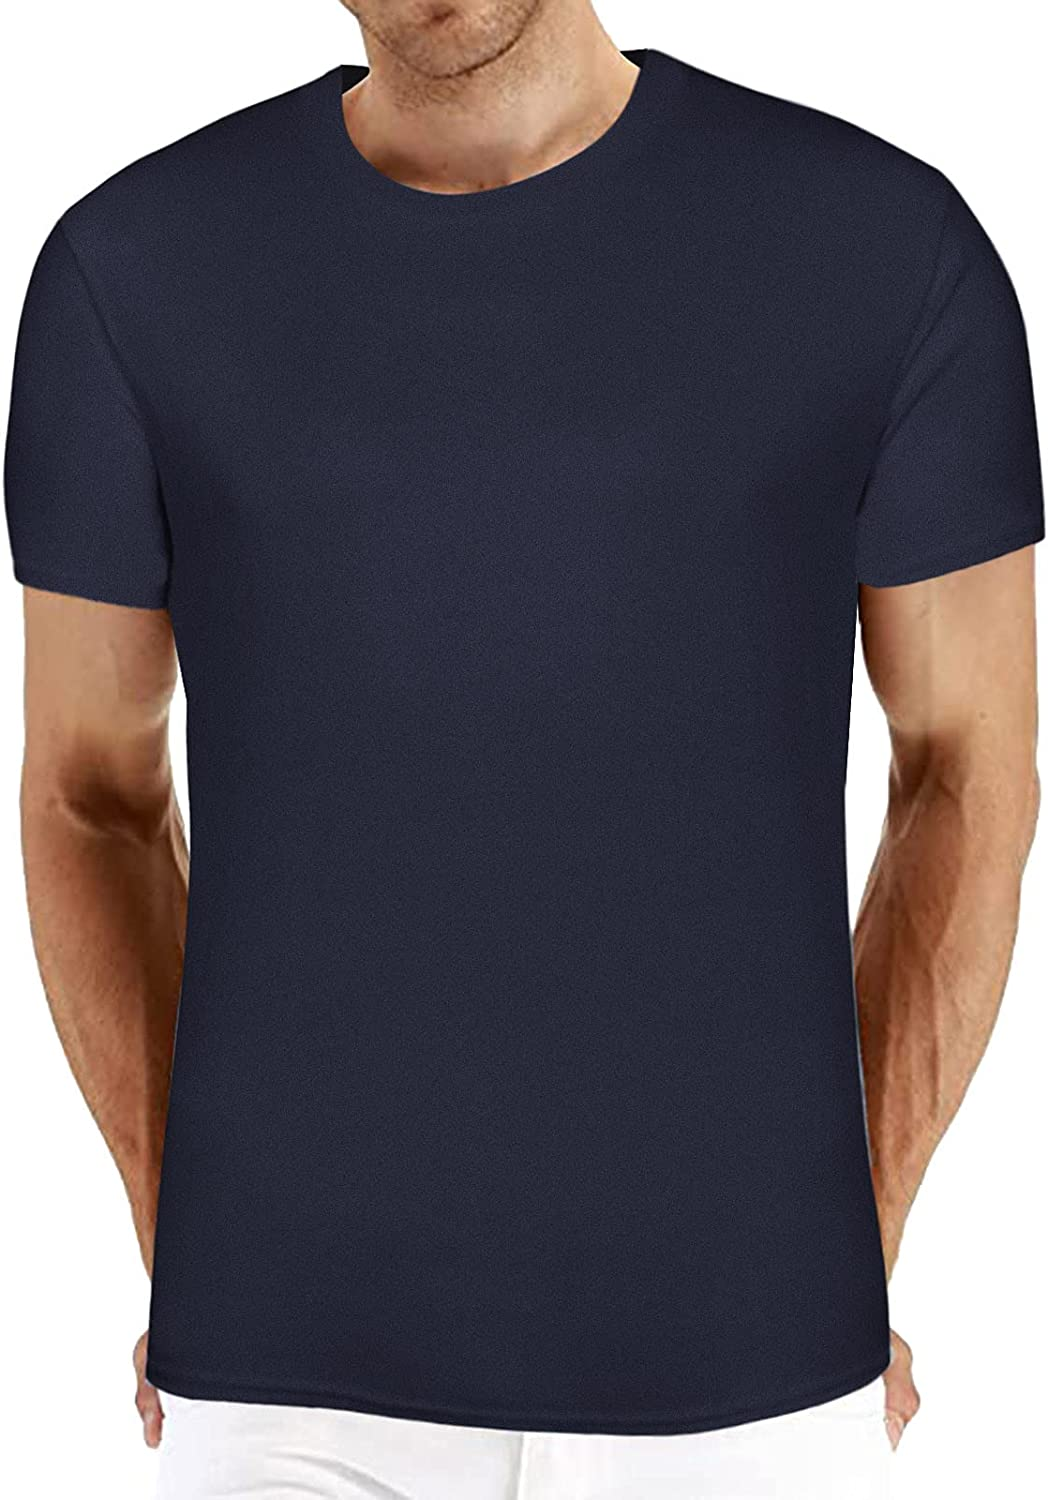 Lovor Men's Basic Short Sleeve T-Shirts Casual Crew Neck Tee Shirt Summer Soft Tops Solid Color Casual Sports T Shirt Blouse